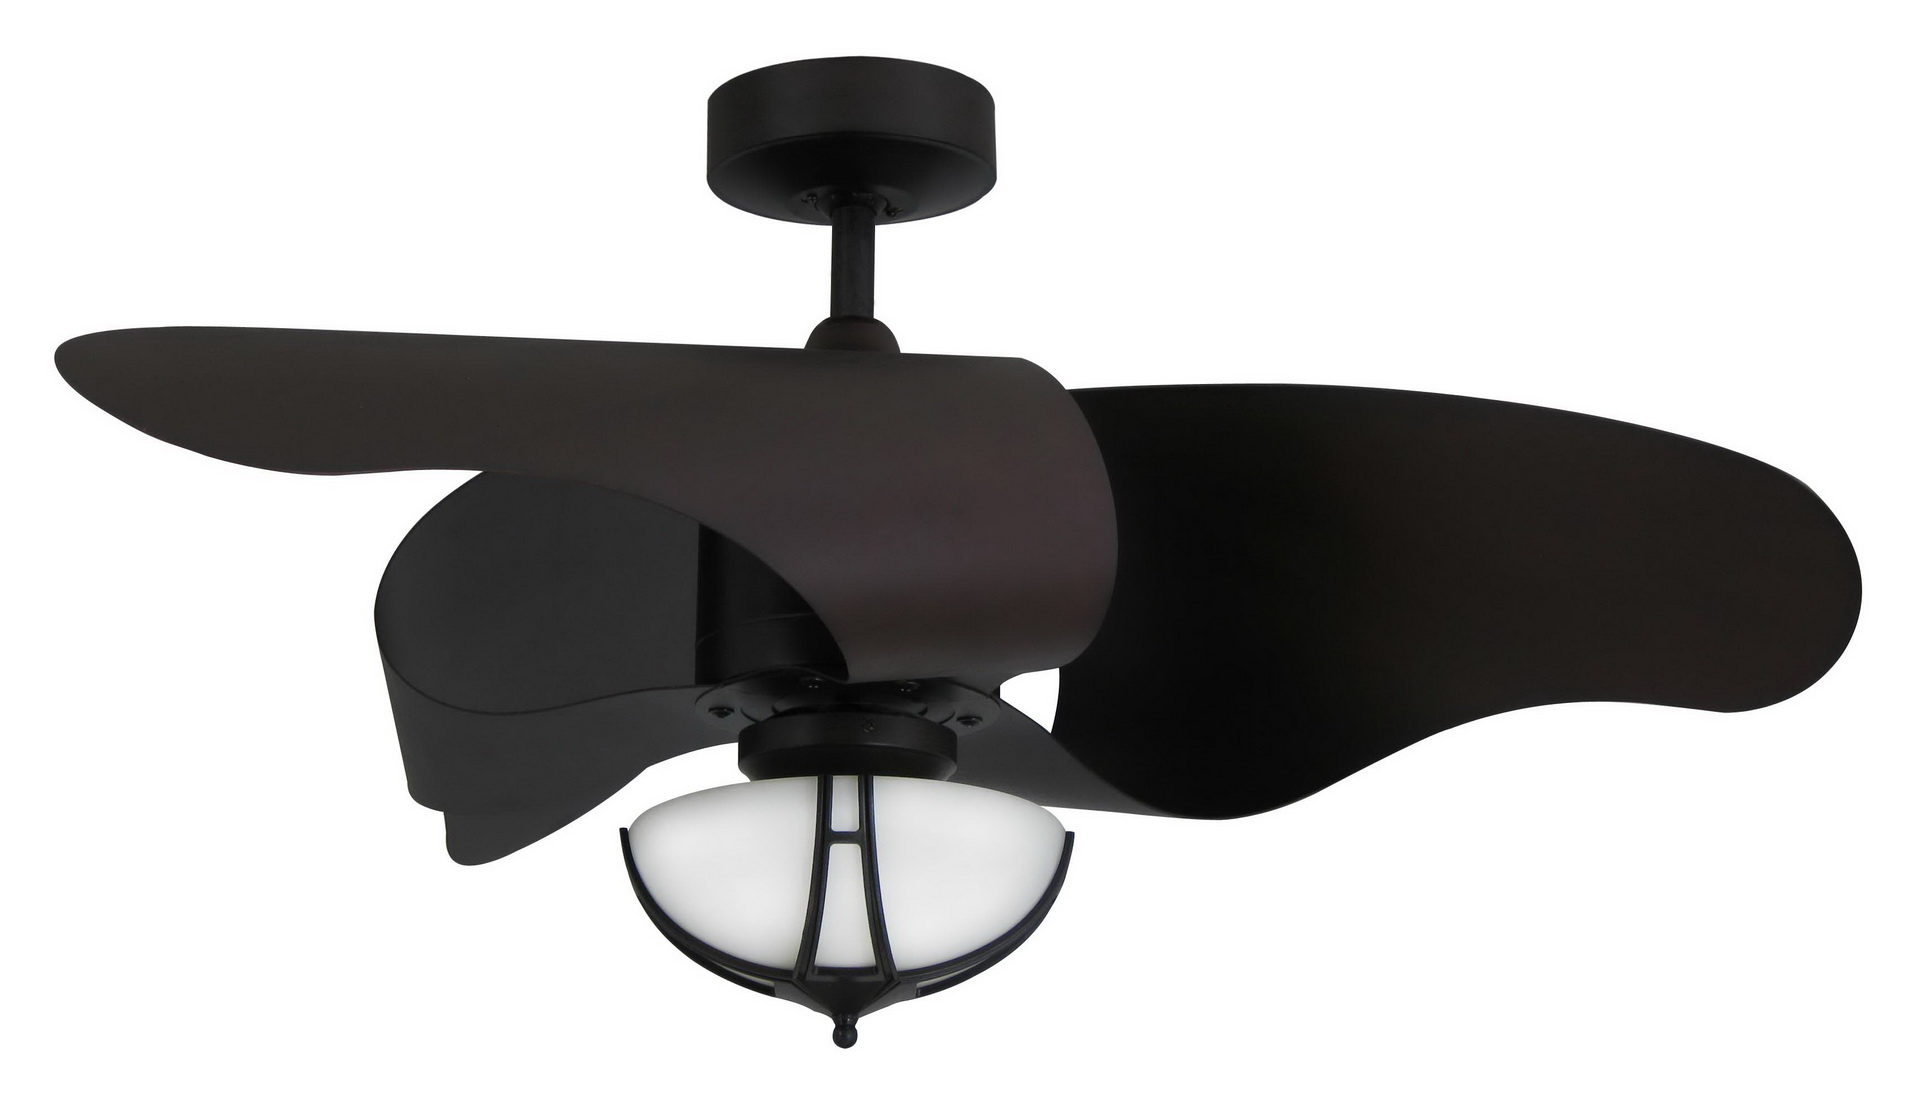 Tamco ceiling fan change the look and style of your room